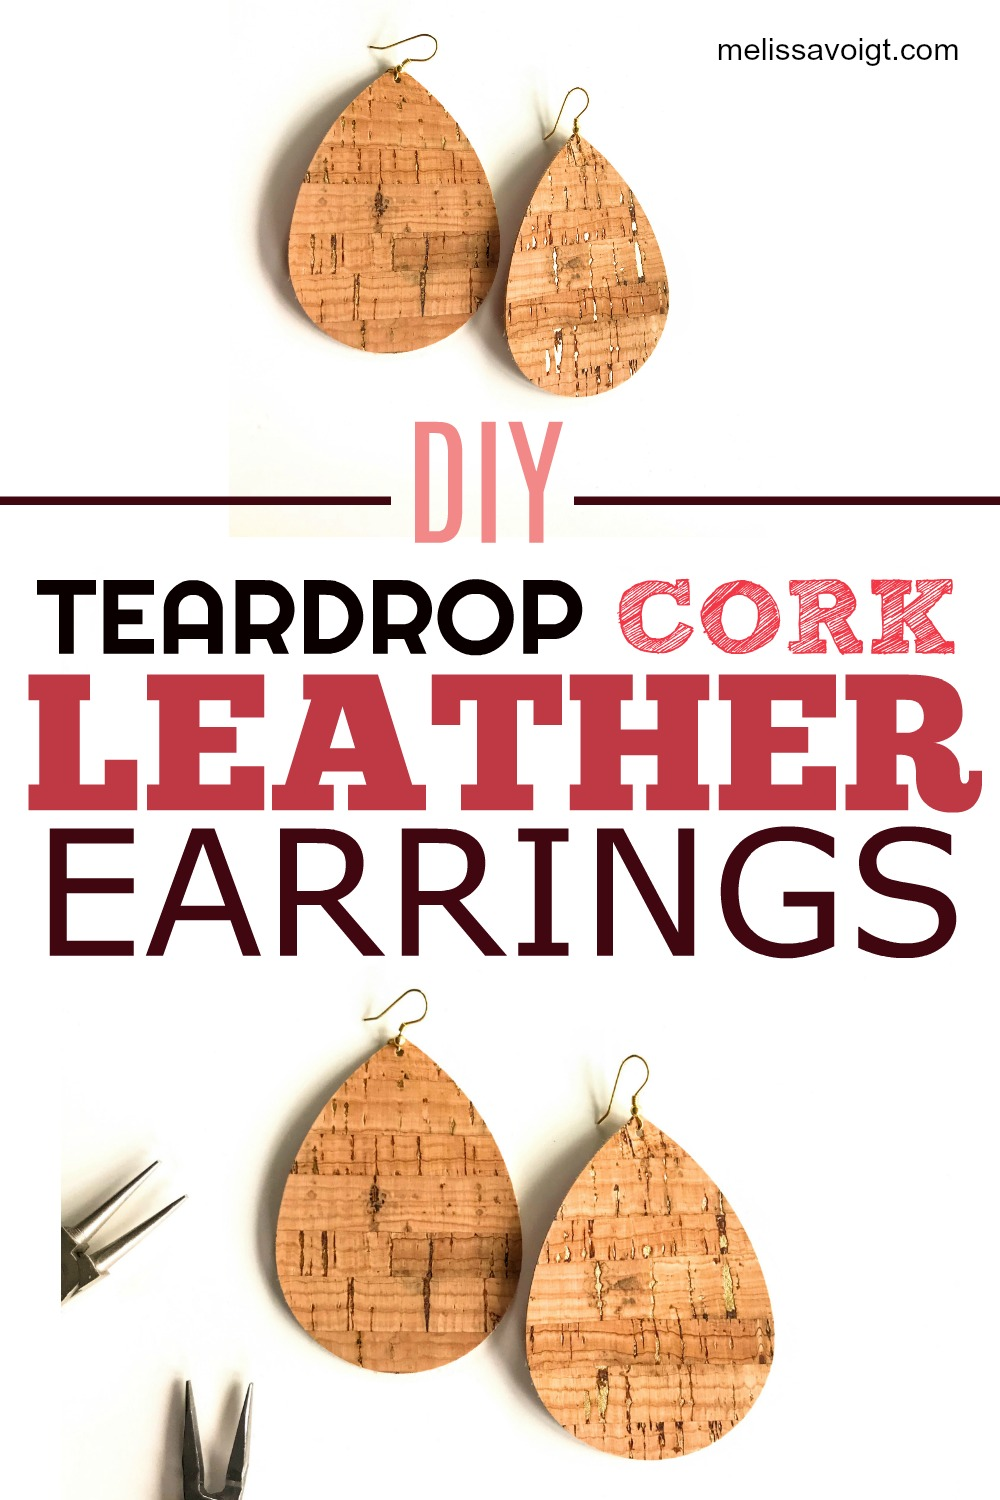 DIY TEARDROP LEATHER EARRINGS SVG.jpg